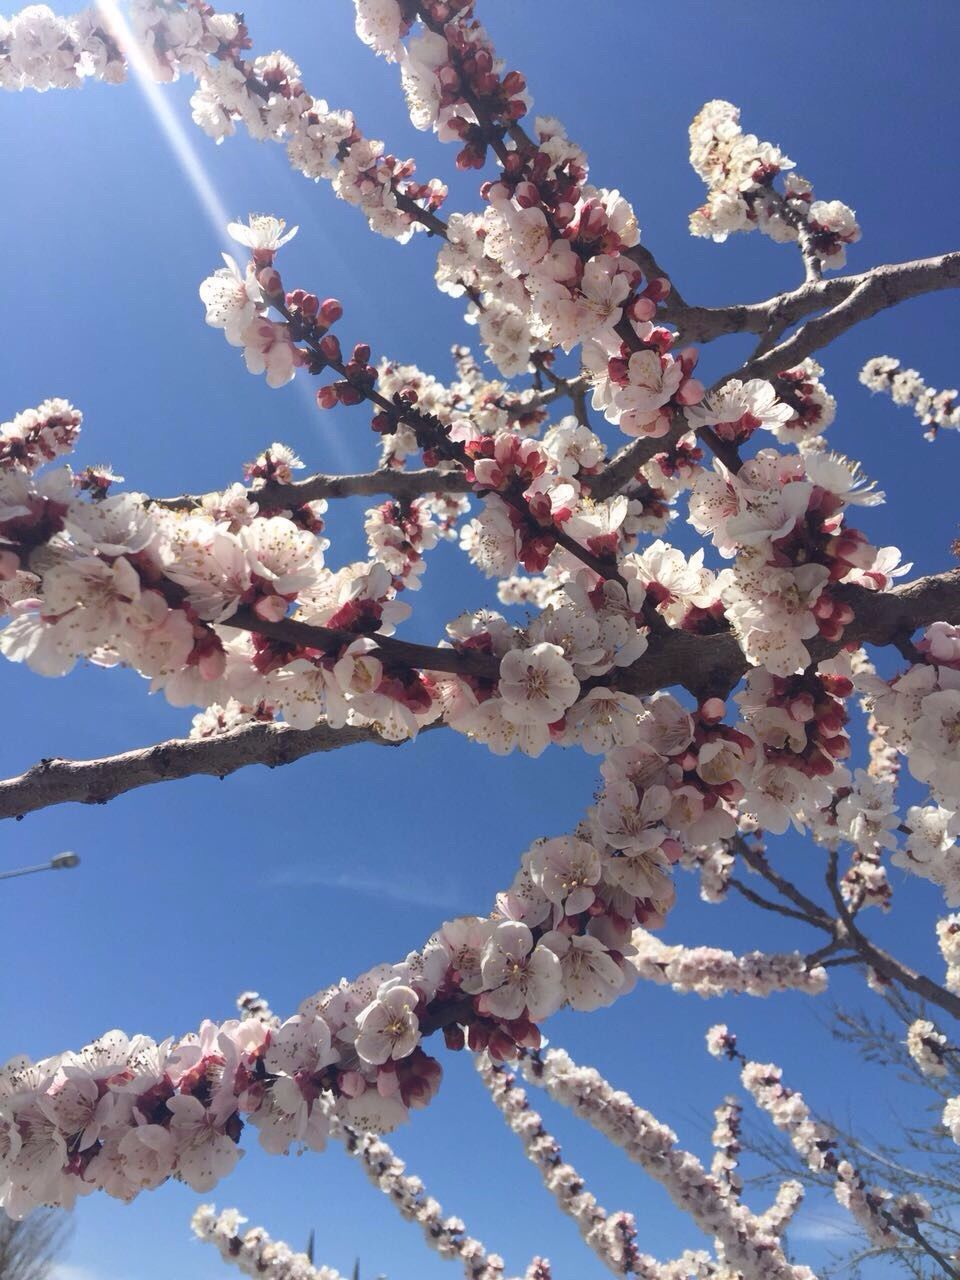 flower, fragility, beauty in nature, blossom, low angle view, growth, branch, nature, tree, springtime, freshness, white color, day, no people, botany, twig, apple blossom, apple tree, orchard, petal, clear sky, outdoors, pink color, sky, close-up, plum blossom, blue, flower head, blooming